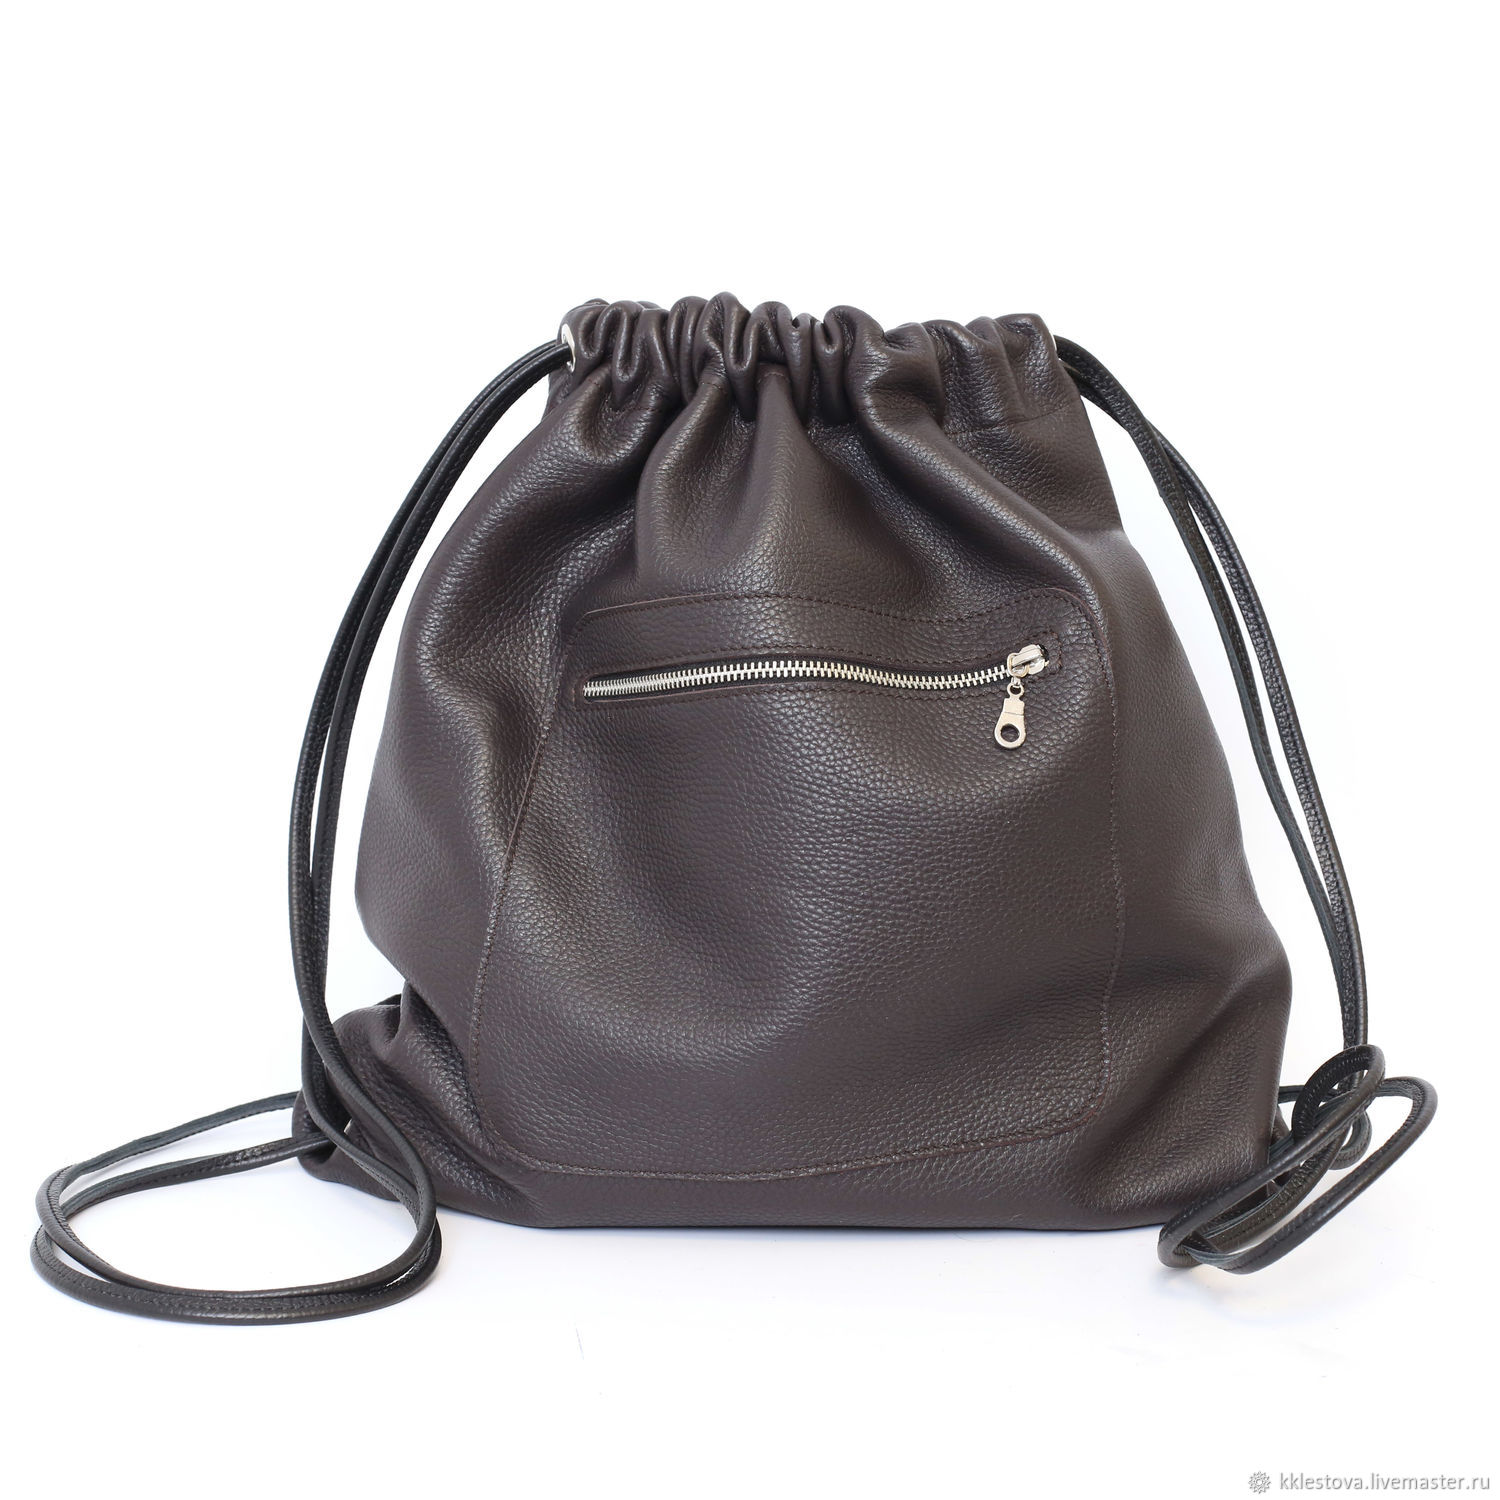 Chocolate Backpack leather large Bag with two pockets, Backpacks, Moscow,  Фото №1